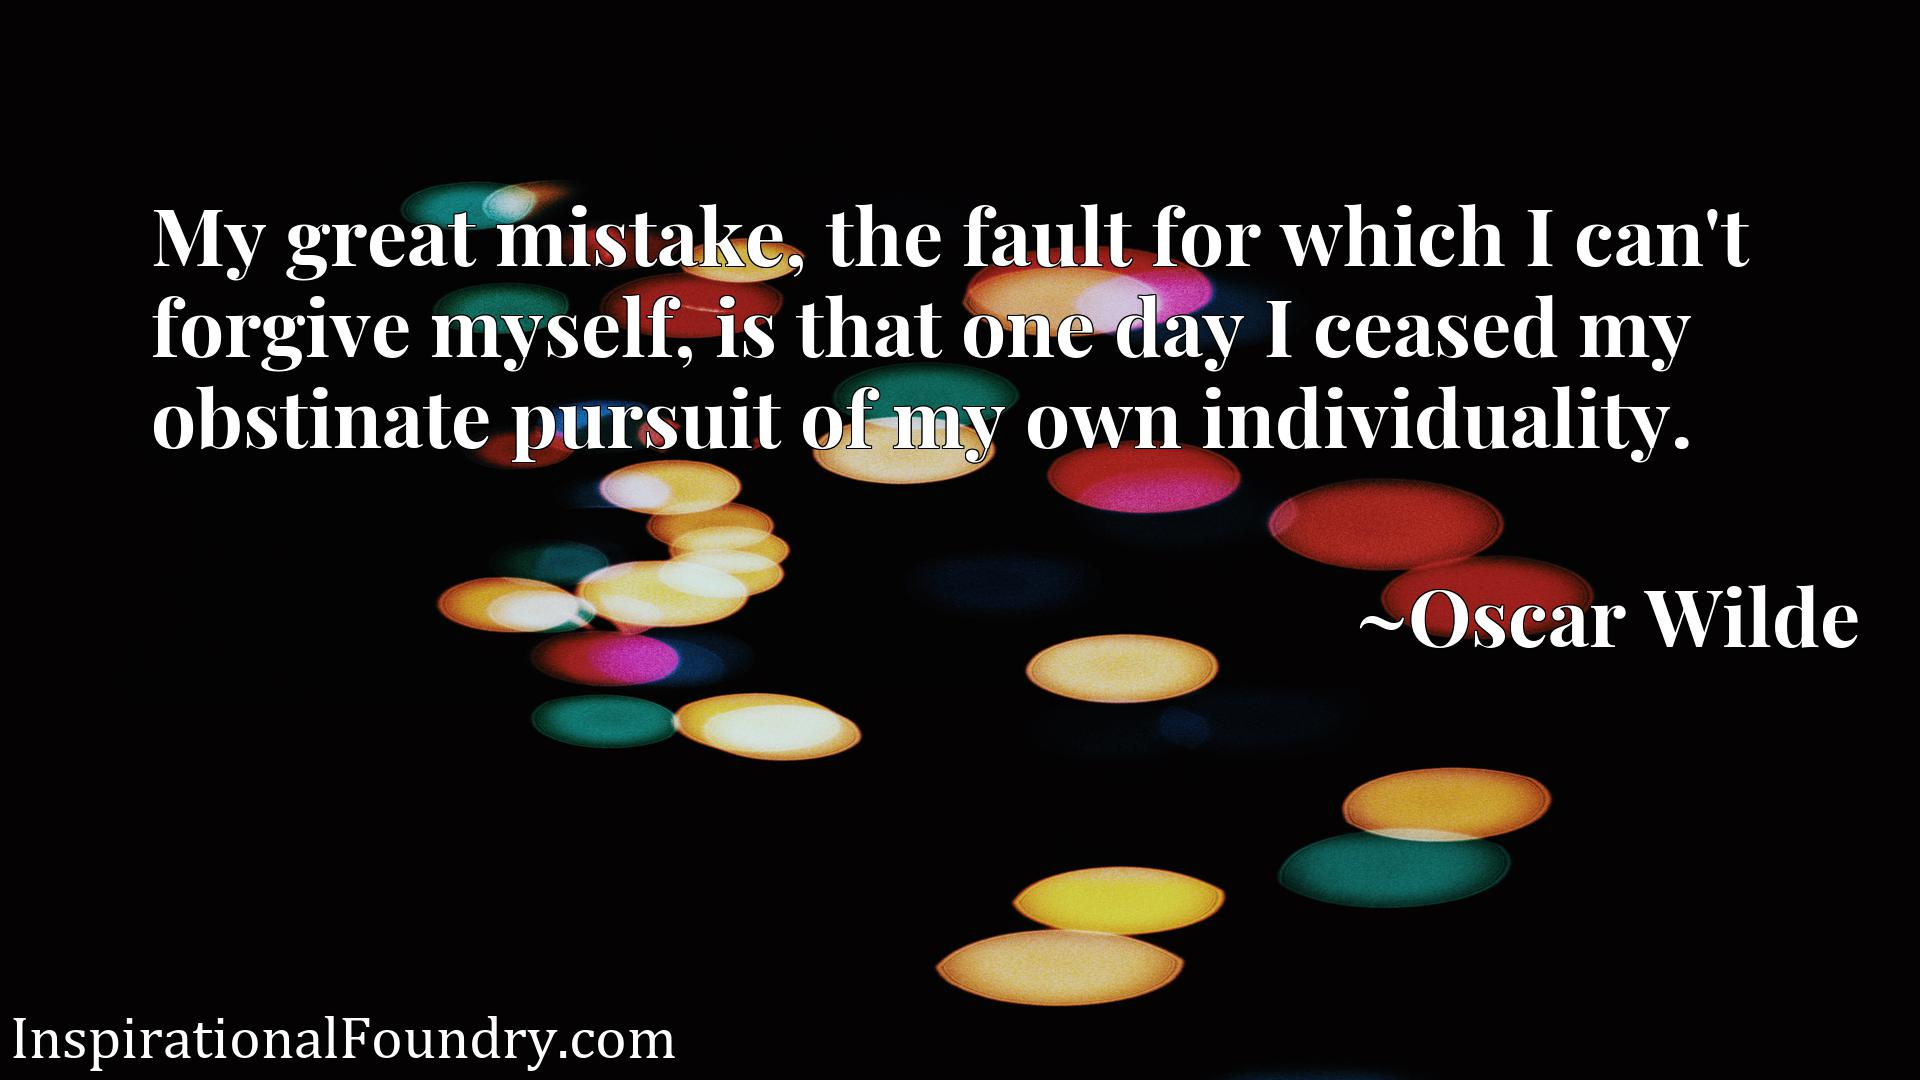 My great mistake, the fault for which I can't forgive myself, is that one day I ceased my obstinate pursuit of my own individuality.